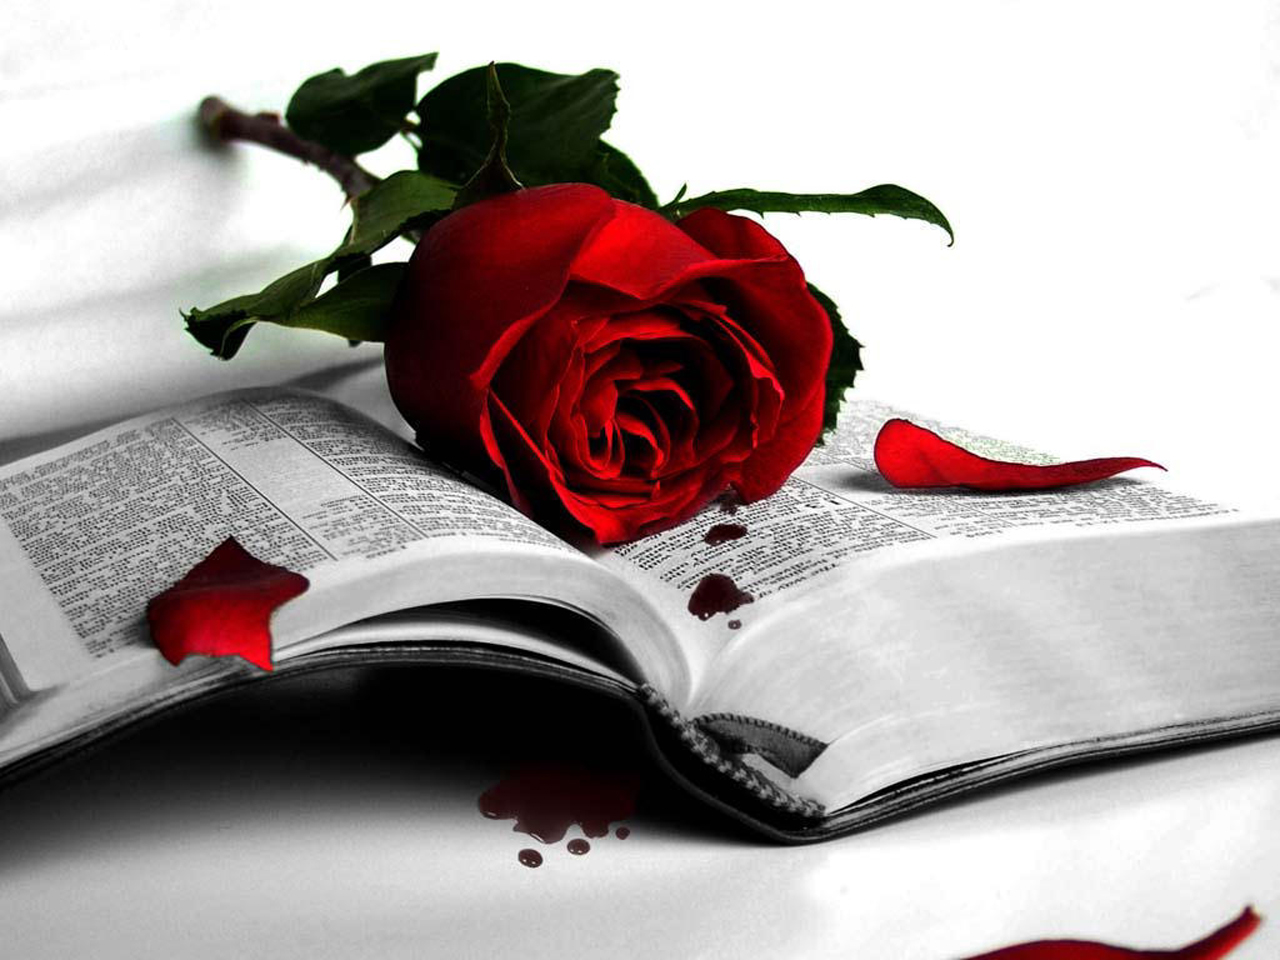 http://3.bp.blogspot.com/-3_0T3cM5lVI/UL_w4ZGOclI/AAAAAAAAAgc/srlbL7EhgwE/s1600/wonderful-love-me-red-rose-wallpaper.jpg